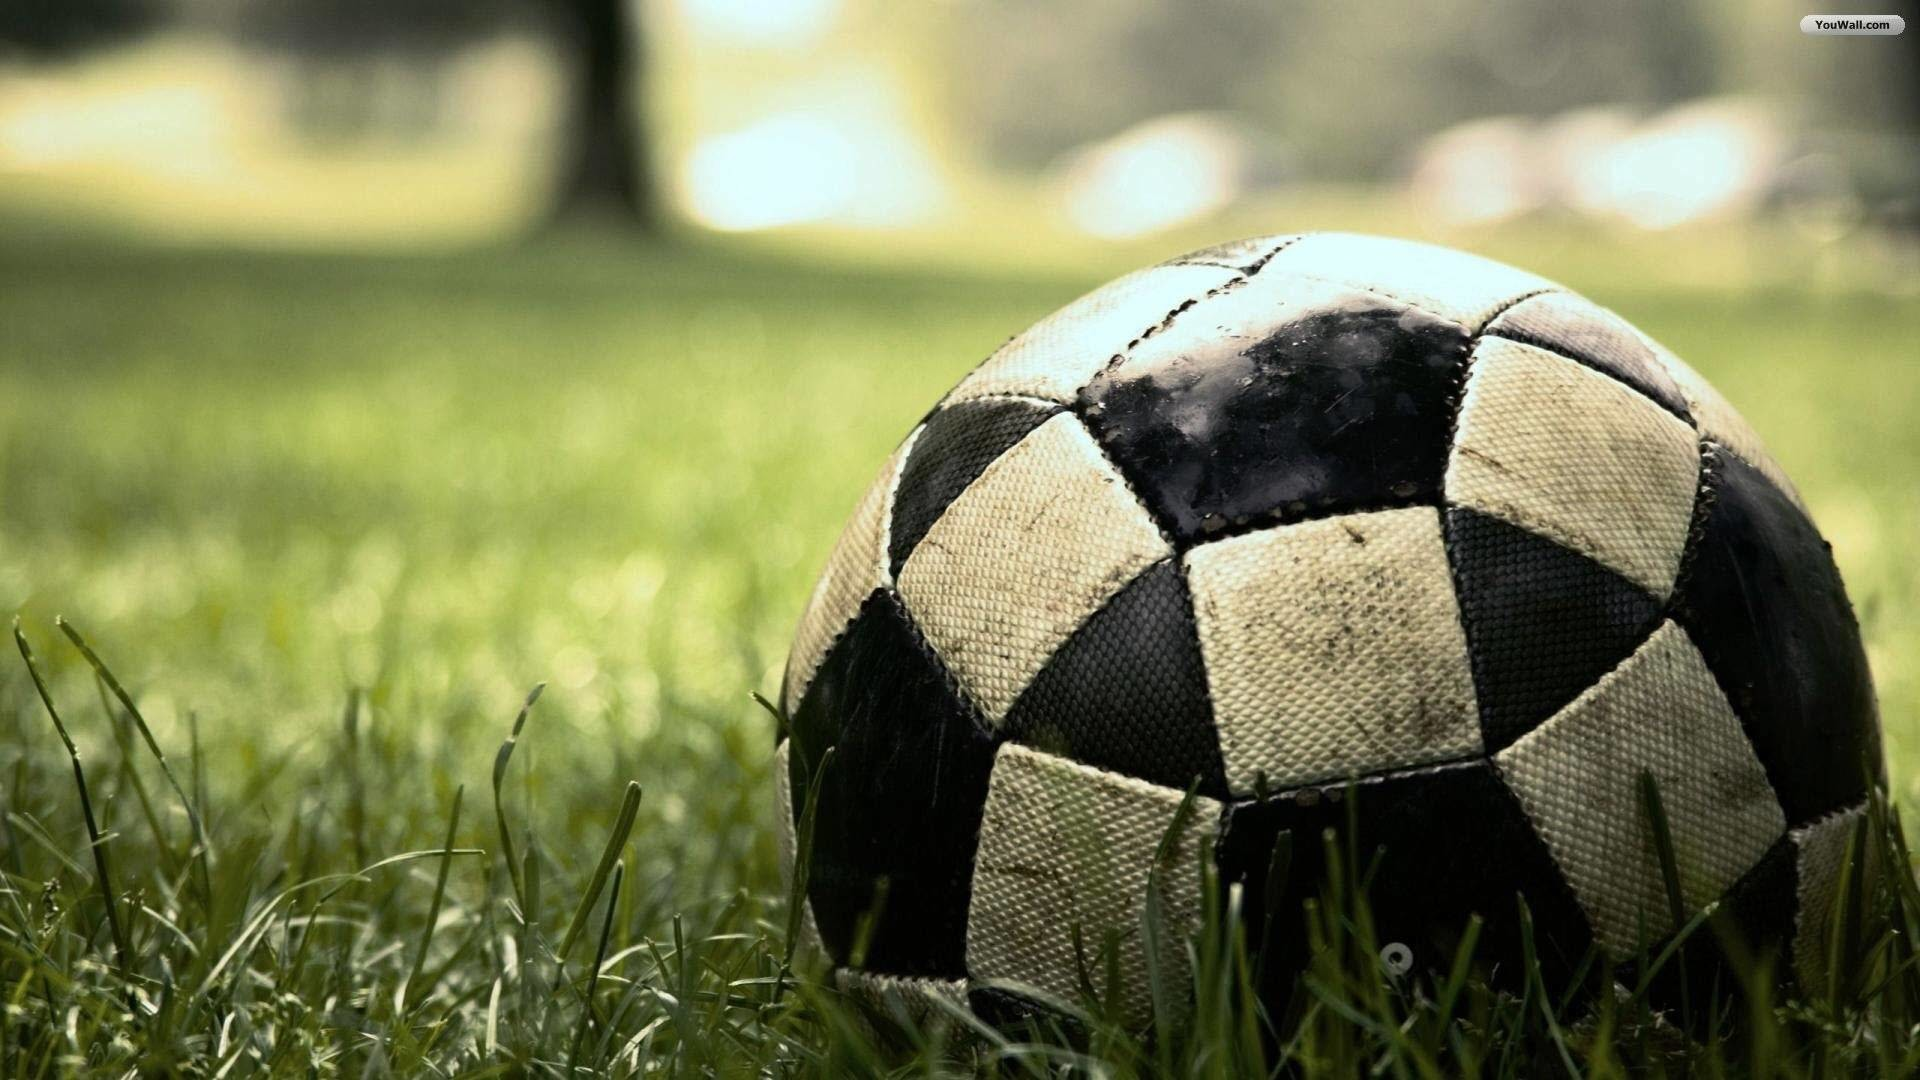 1920x1080 Soccer Wallpaper 2013 Hd Background Wallpaper 23 HD Wallpapers .